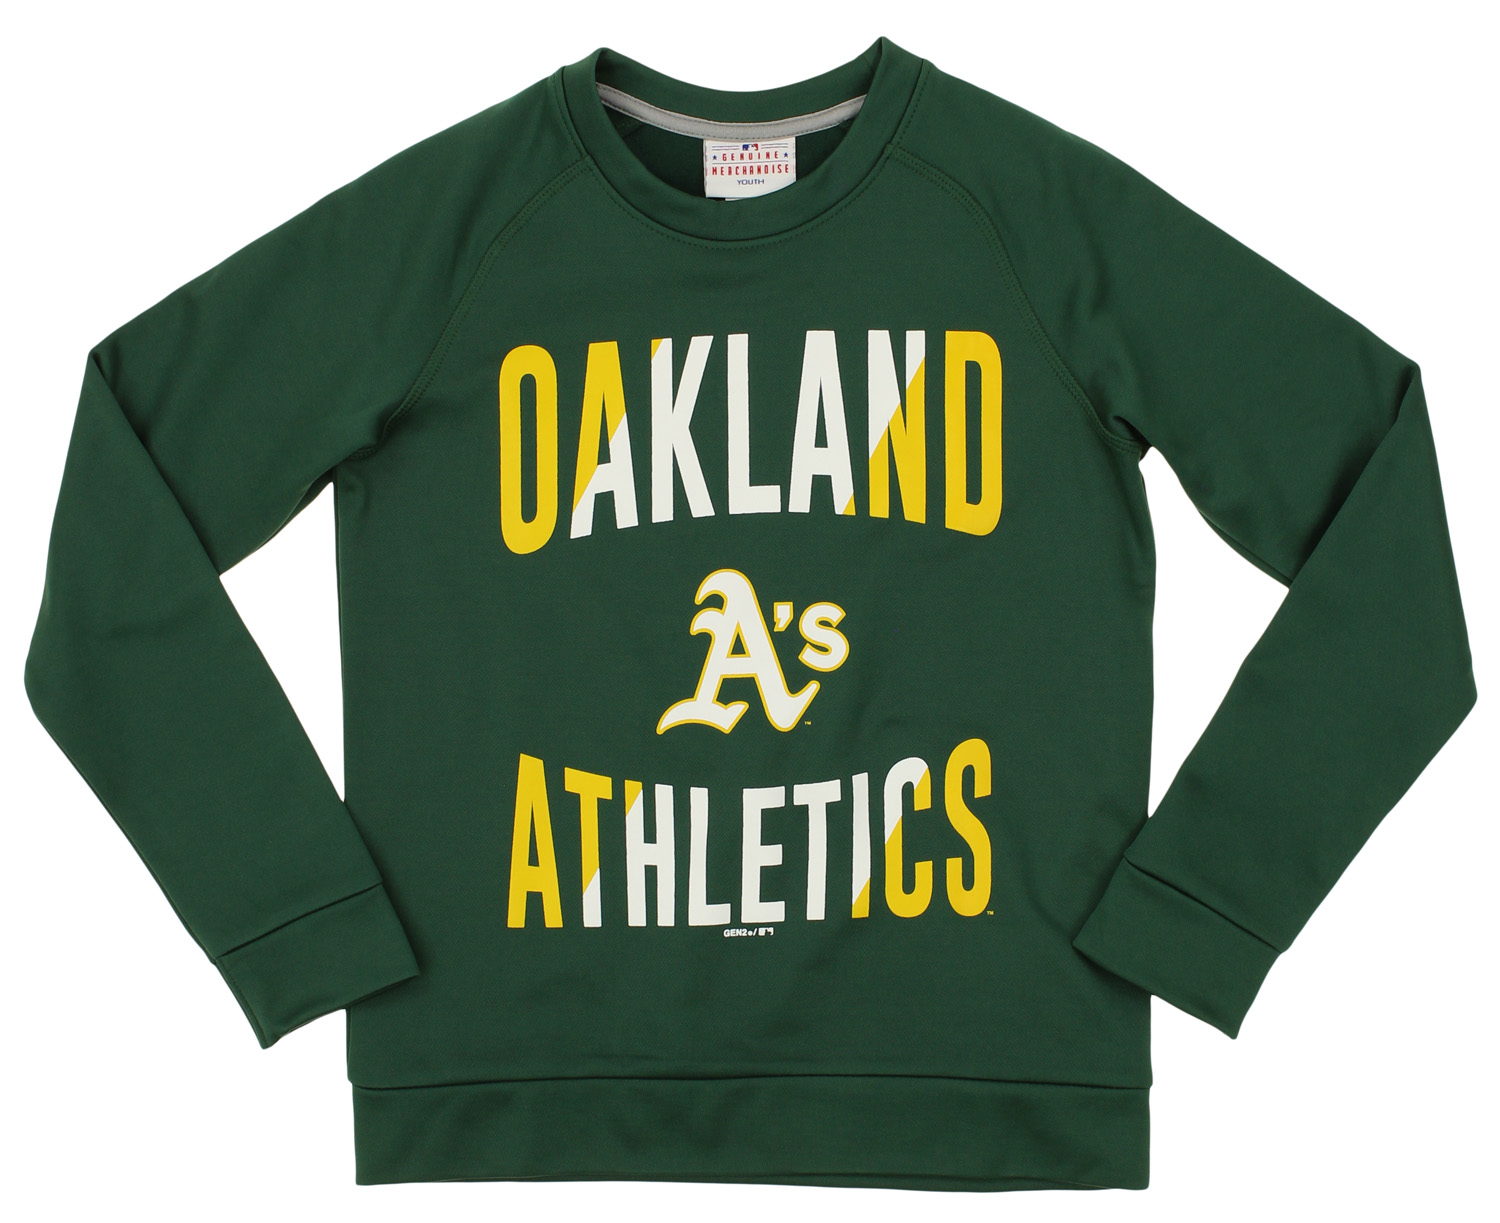 Outerstuff Oakland Athletics Boys Youth Green Crew Neck T-Shirt